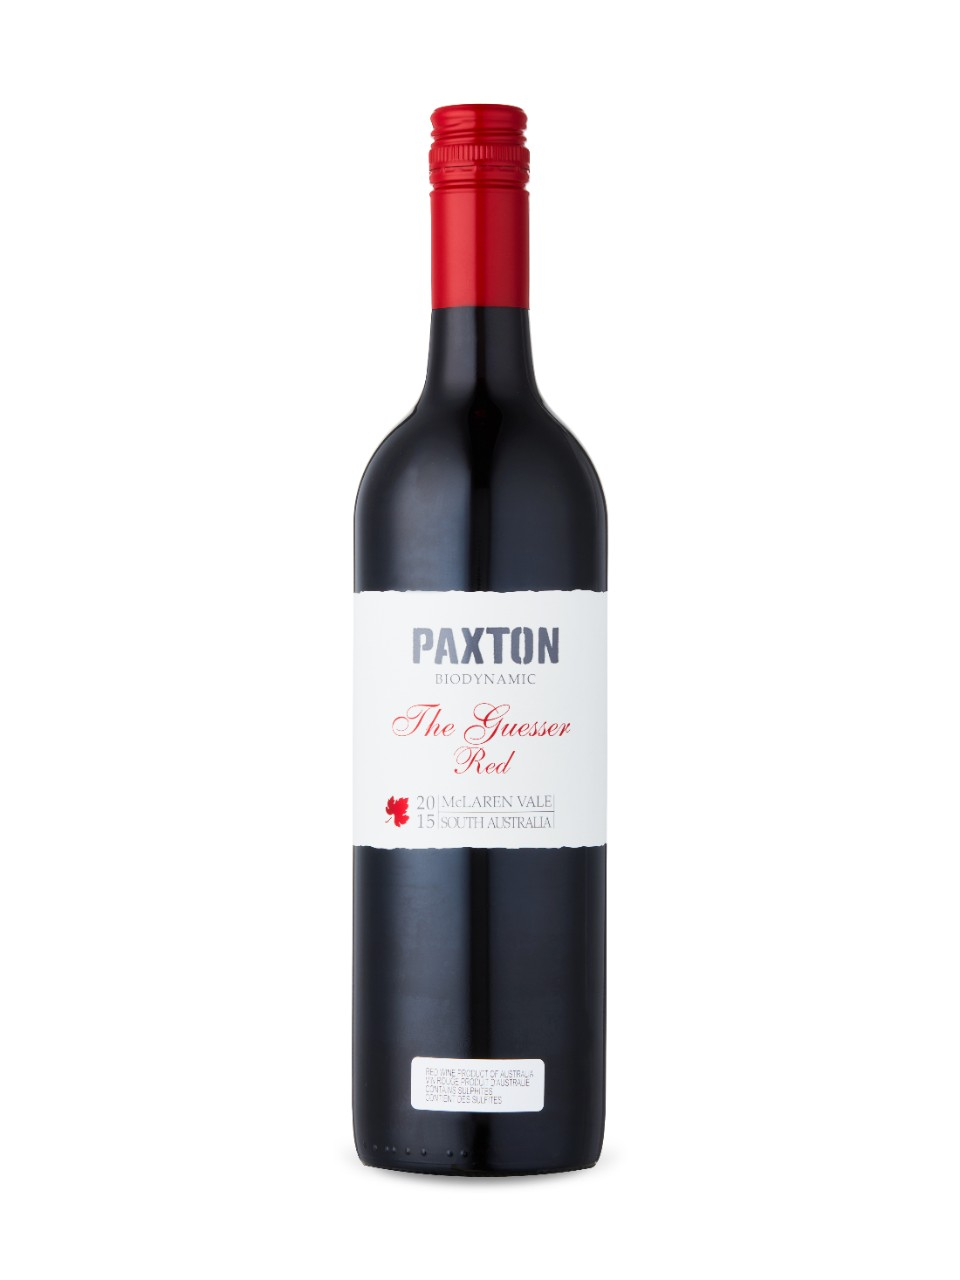 The Guesser Rouge Paxton 2015